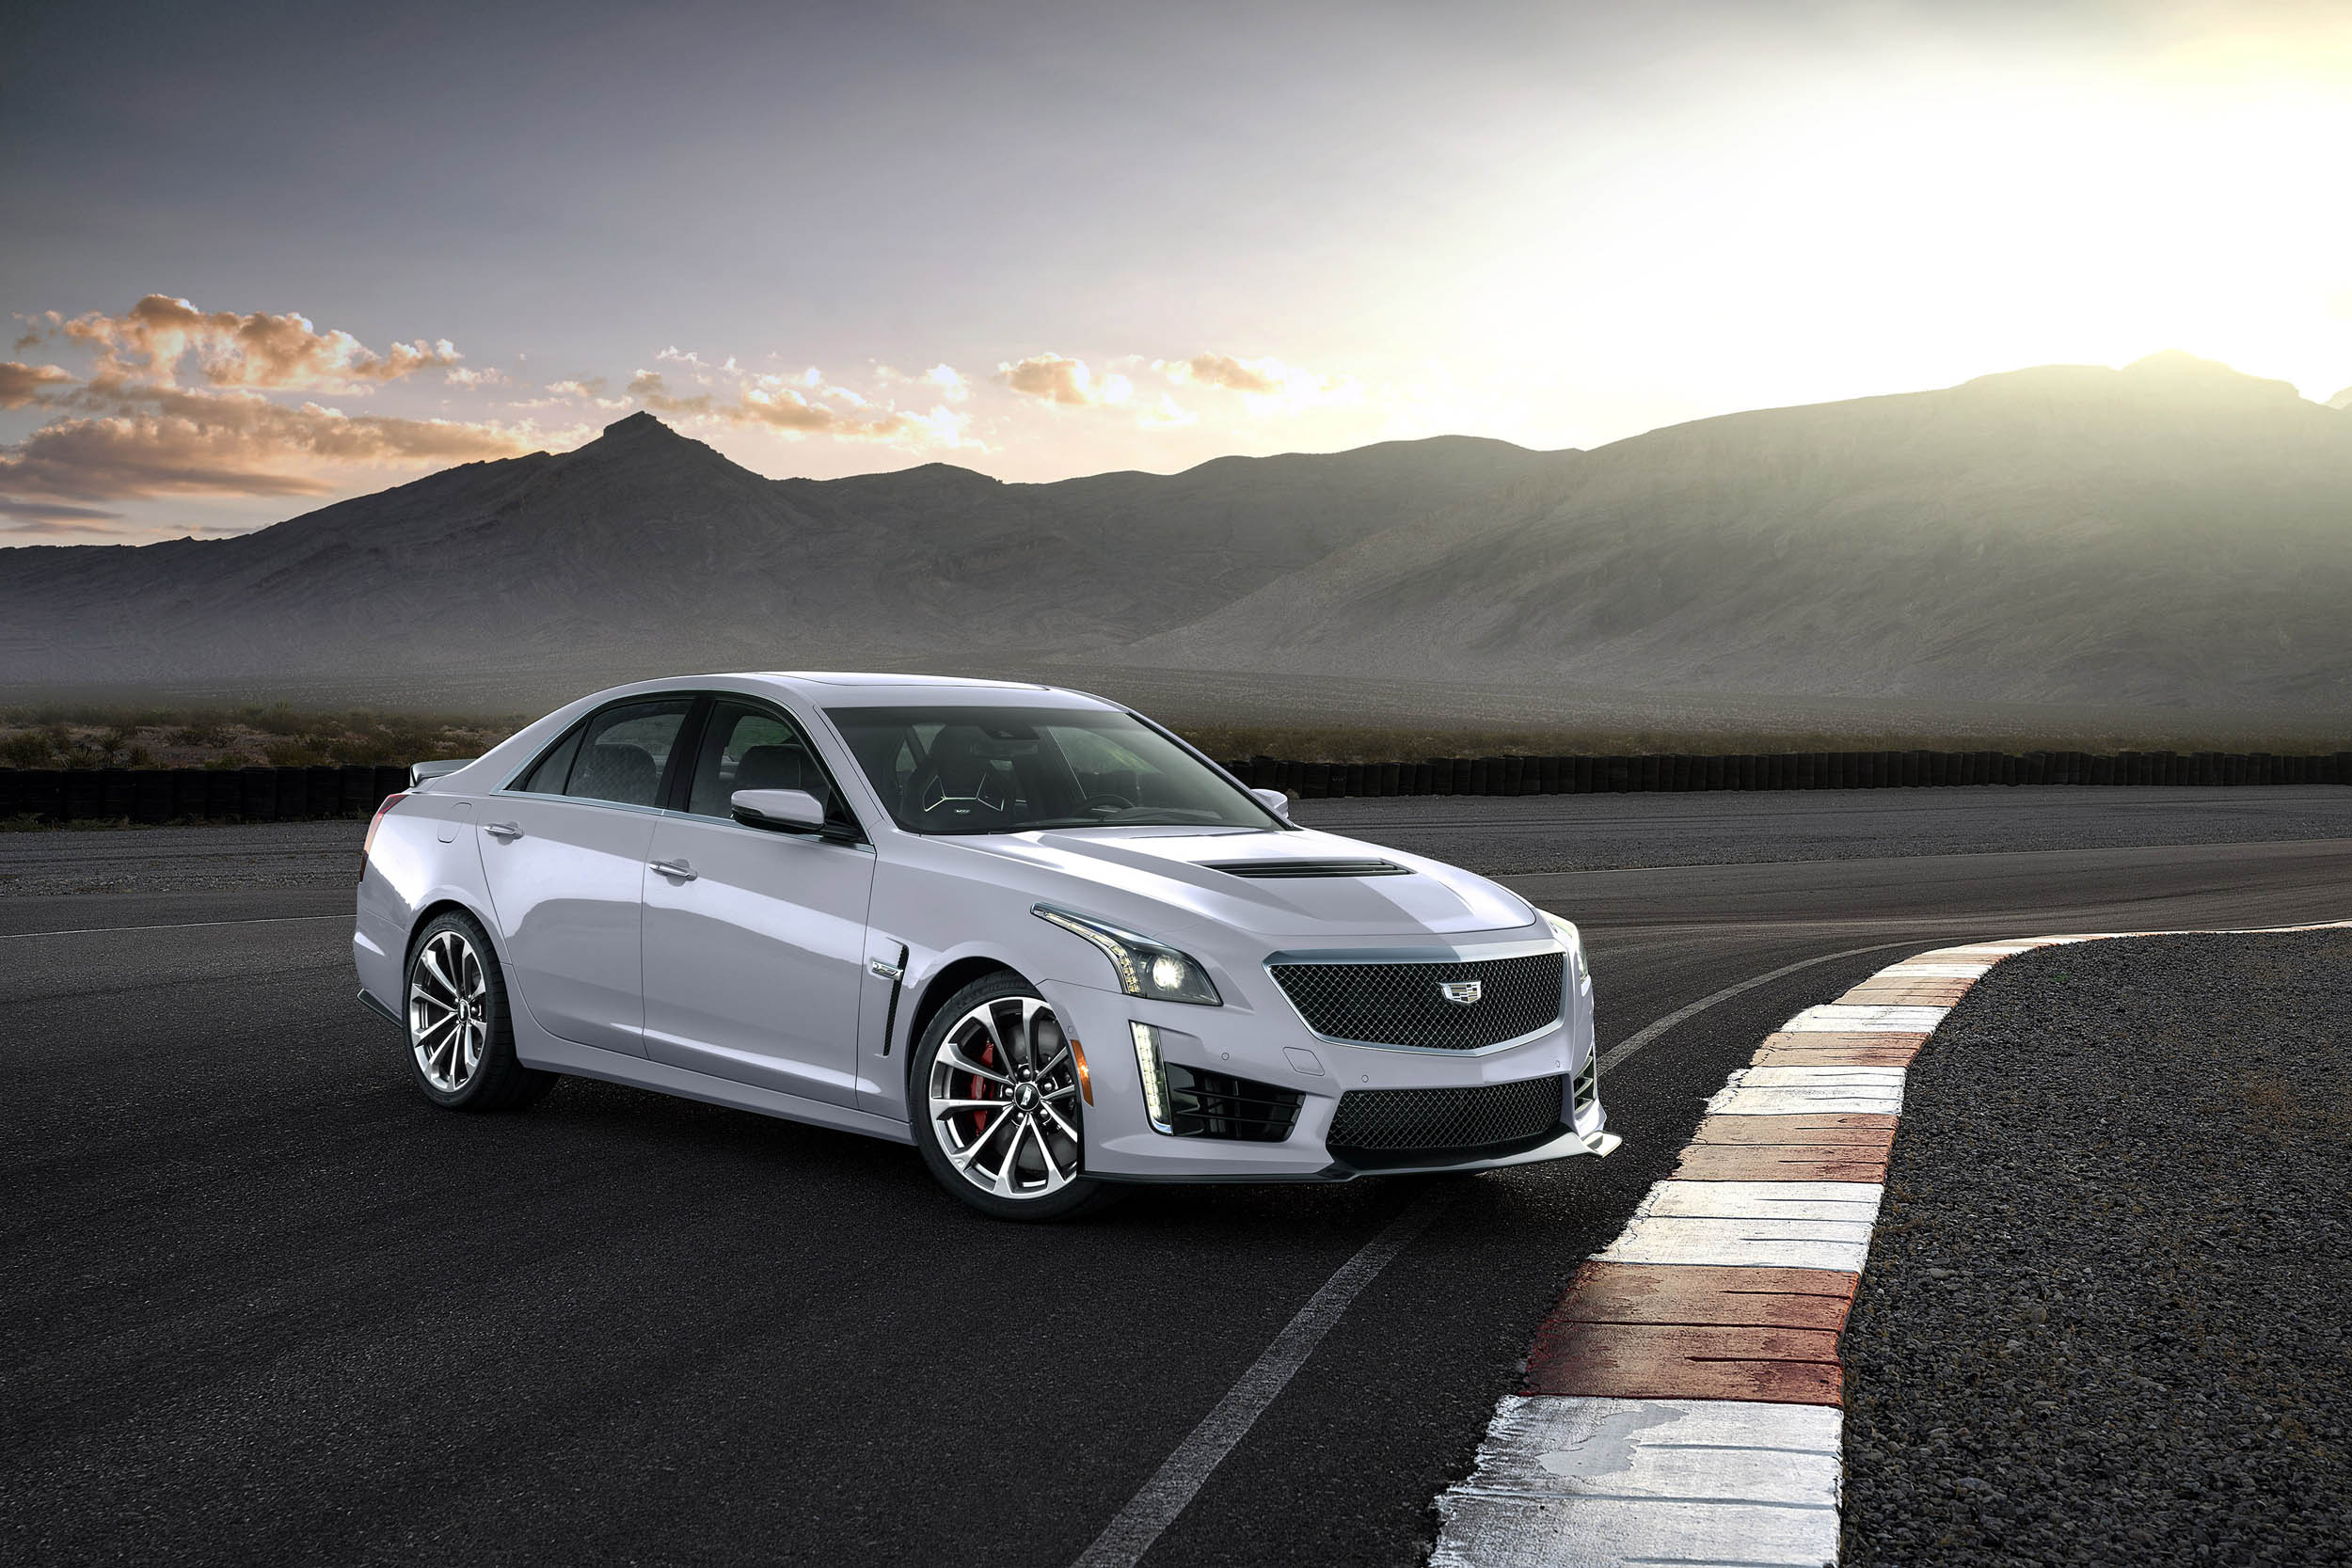 New and Used Cadillac CTS Prices, Photos, Reviews, Specs   The ...